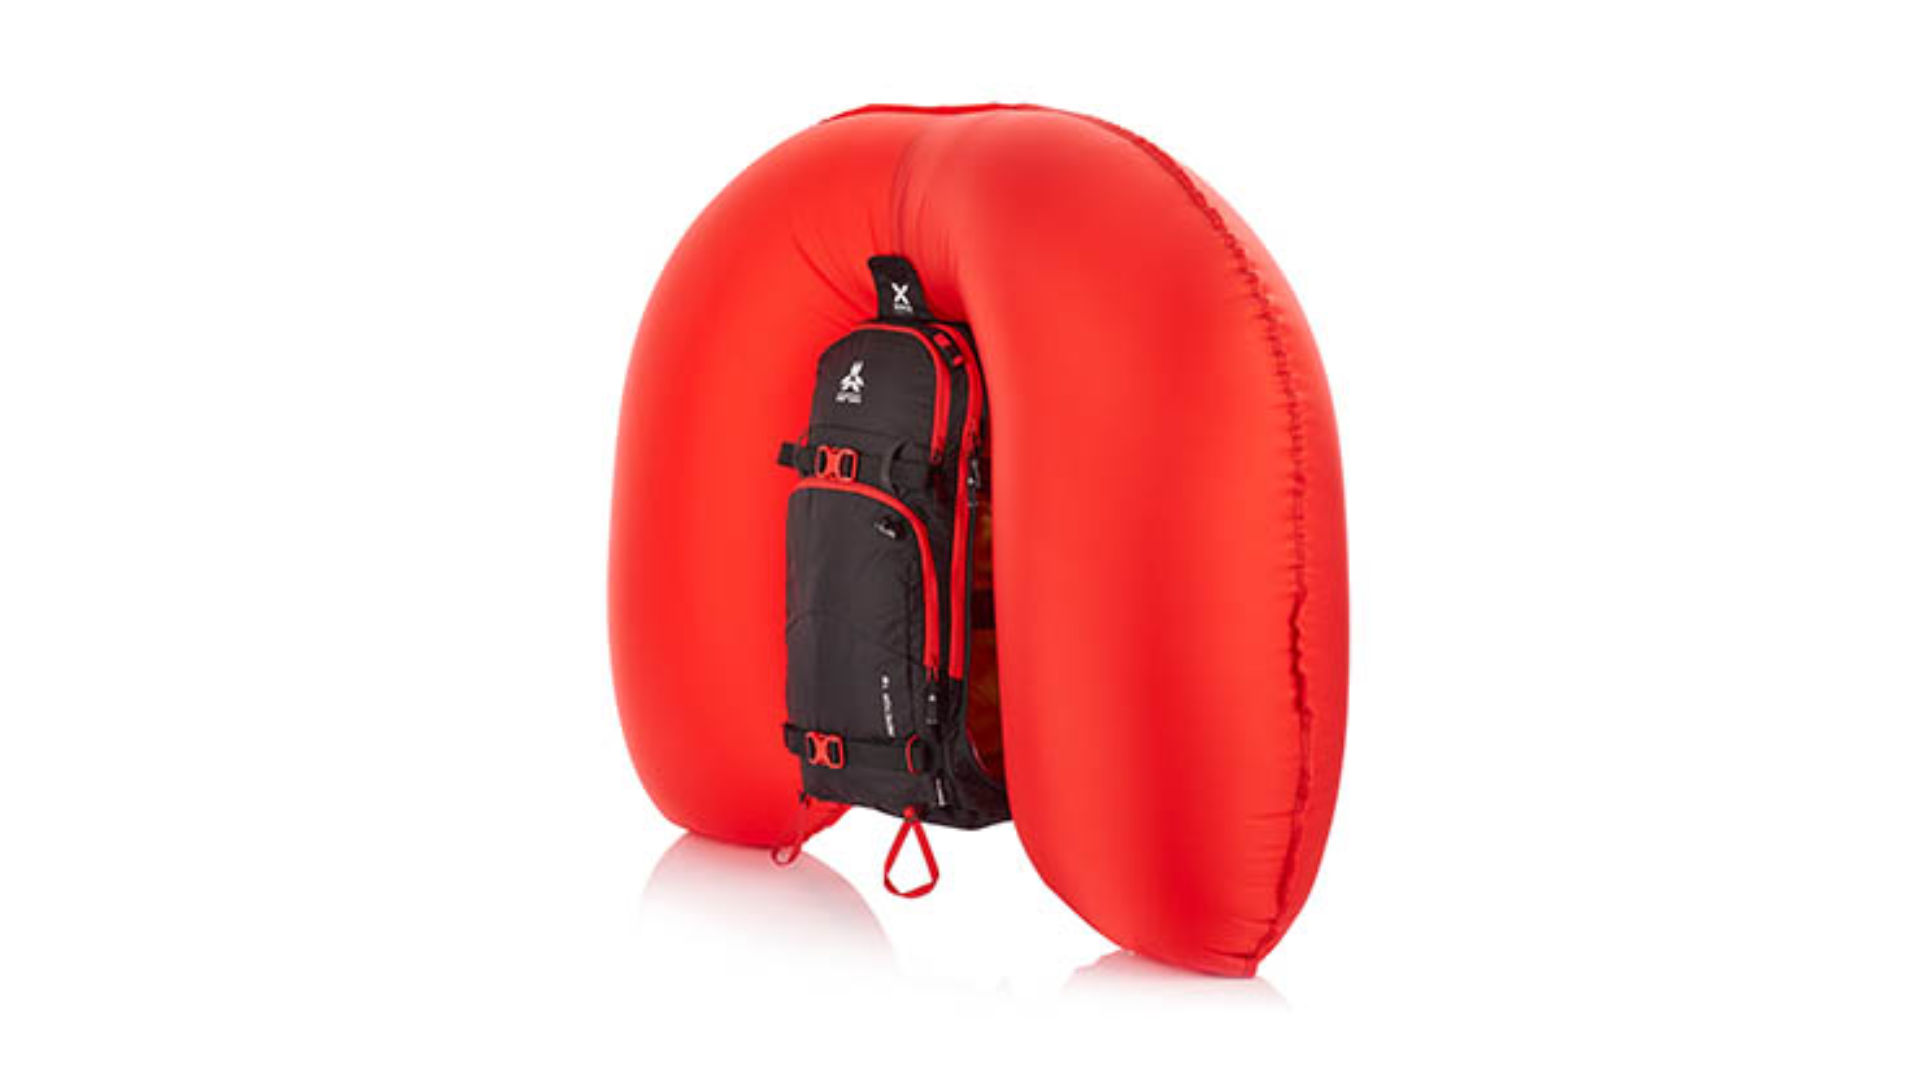 Inflated avalanche backpack by Arva